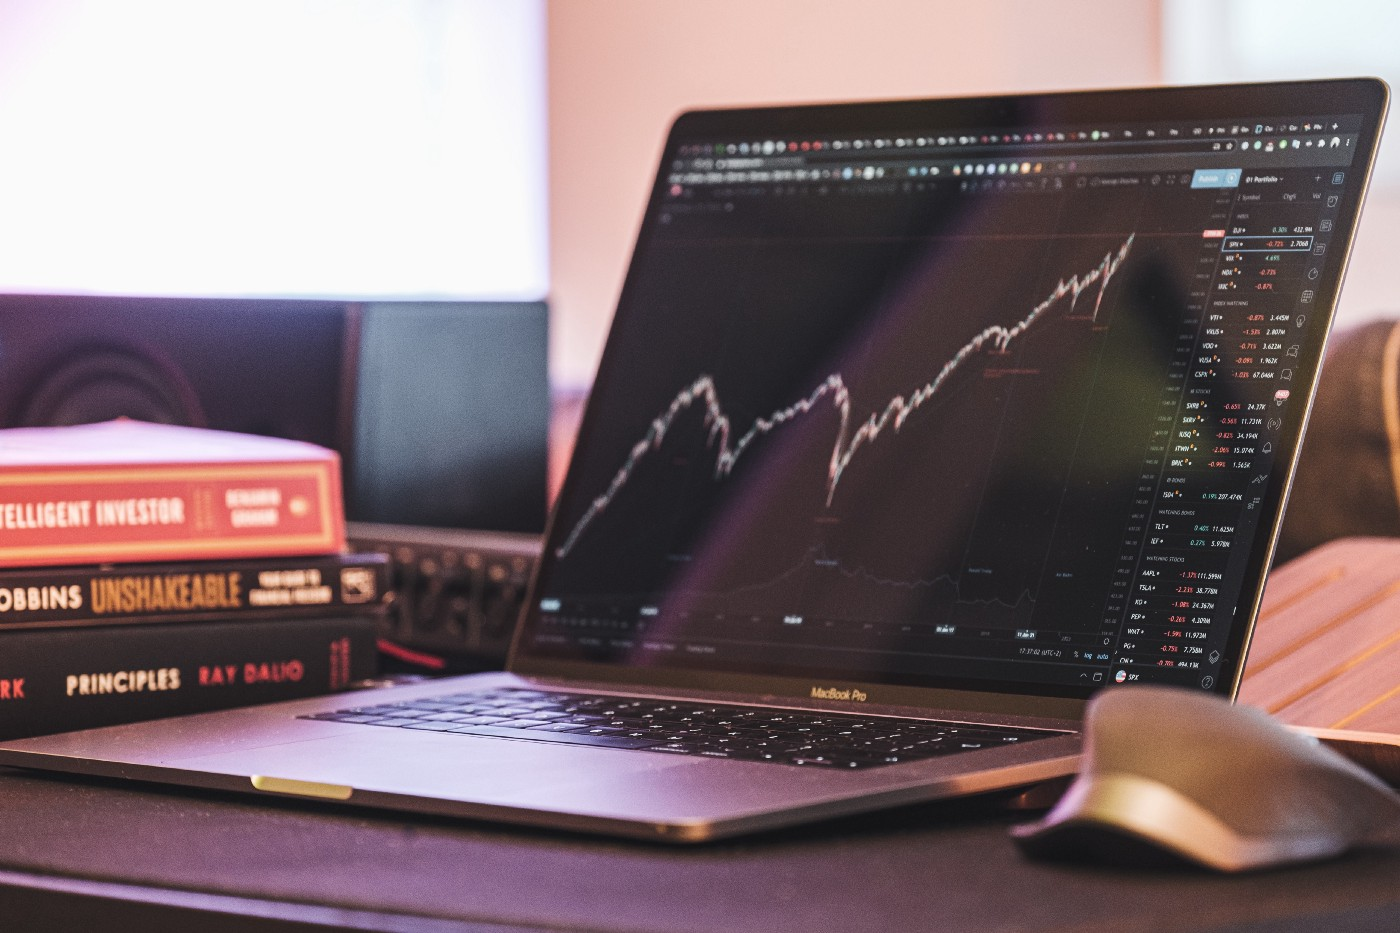 A laptop and investing books